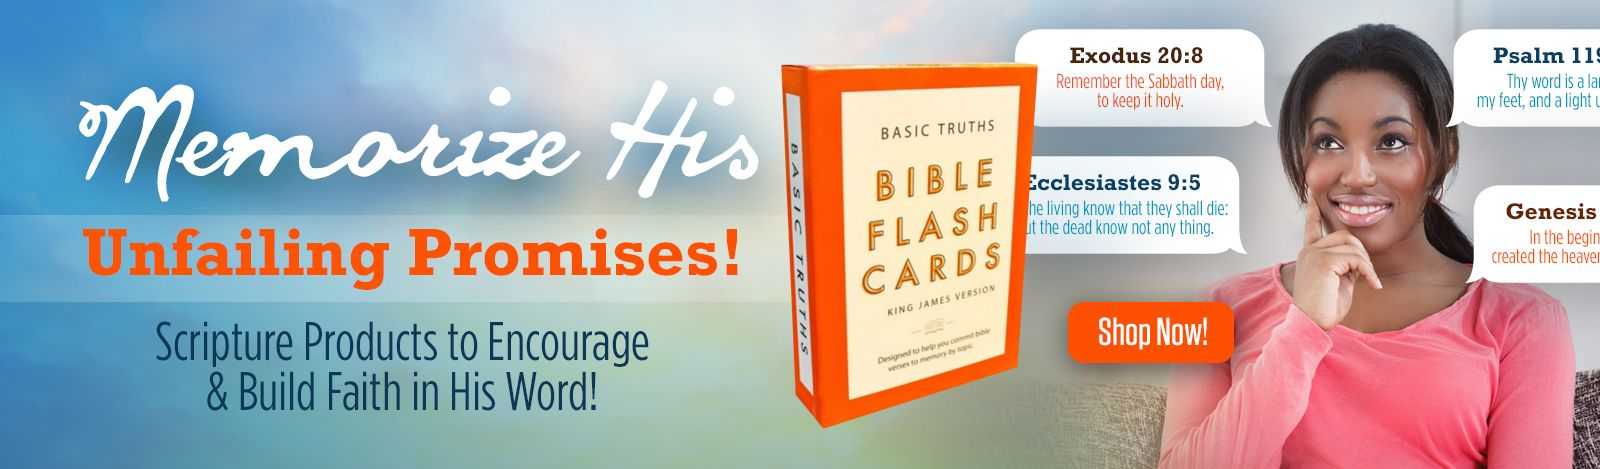 Memorize Scripture!  Here's How ...